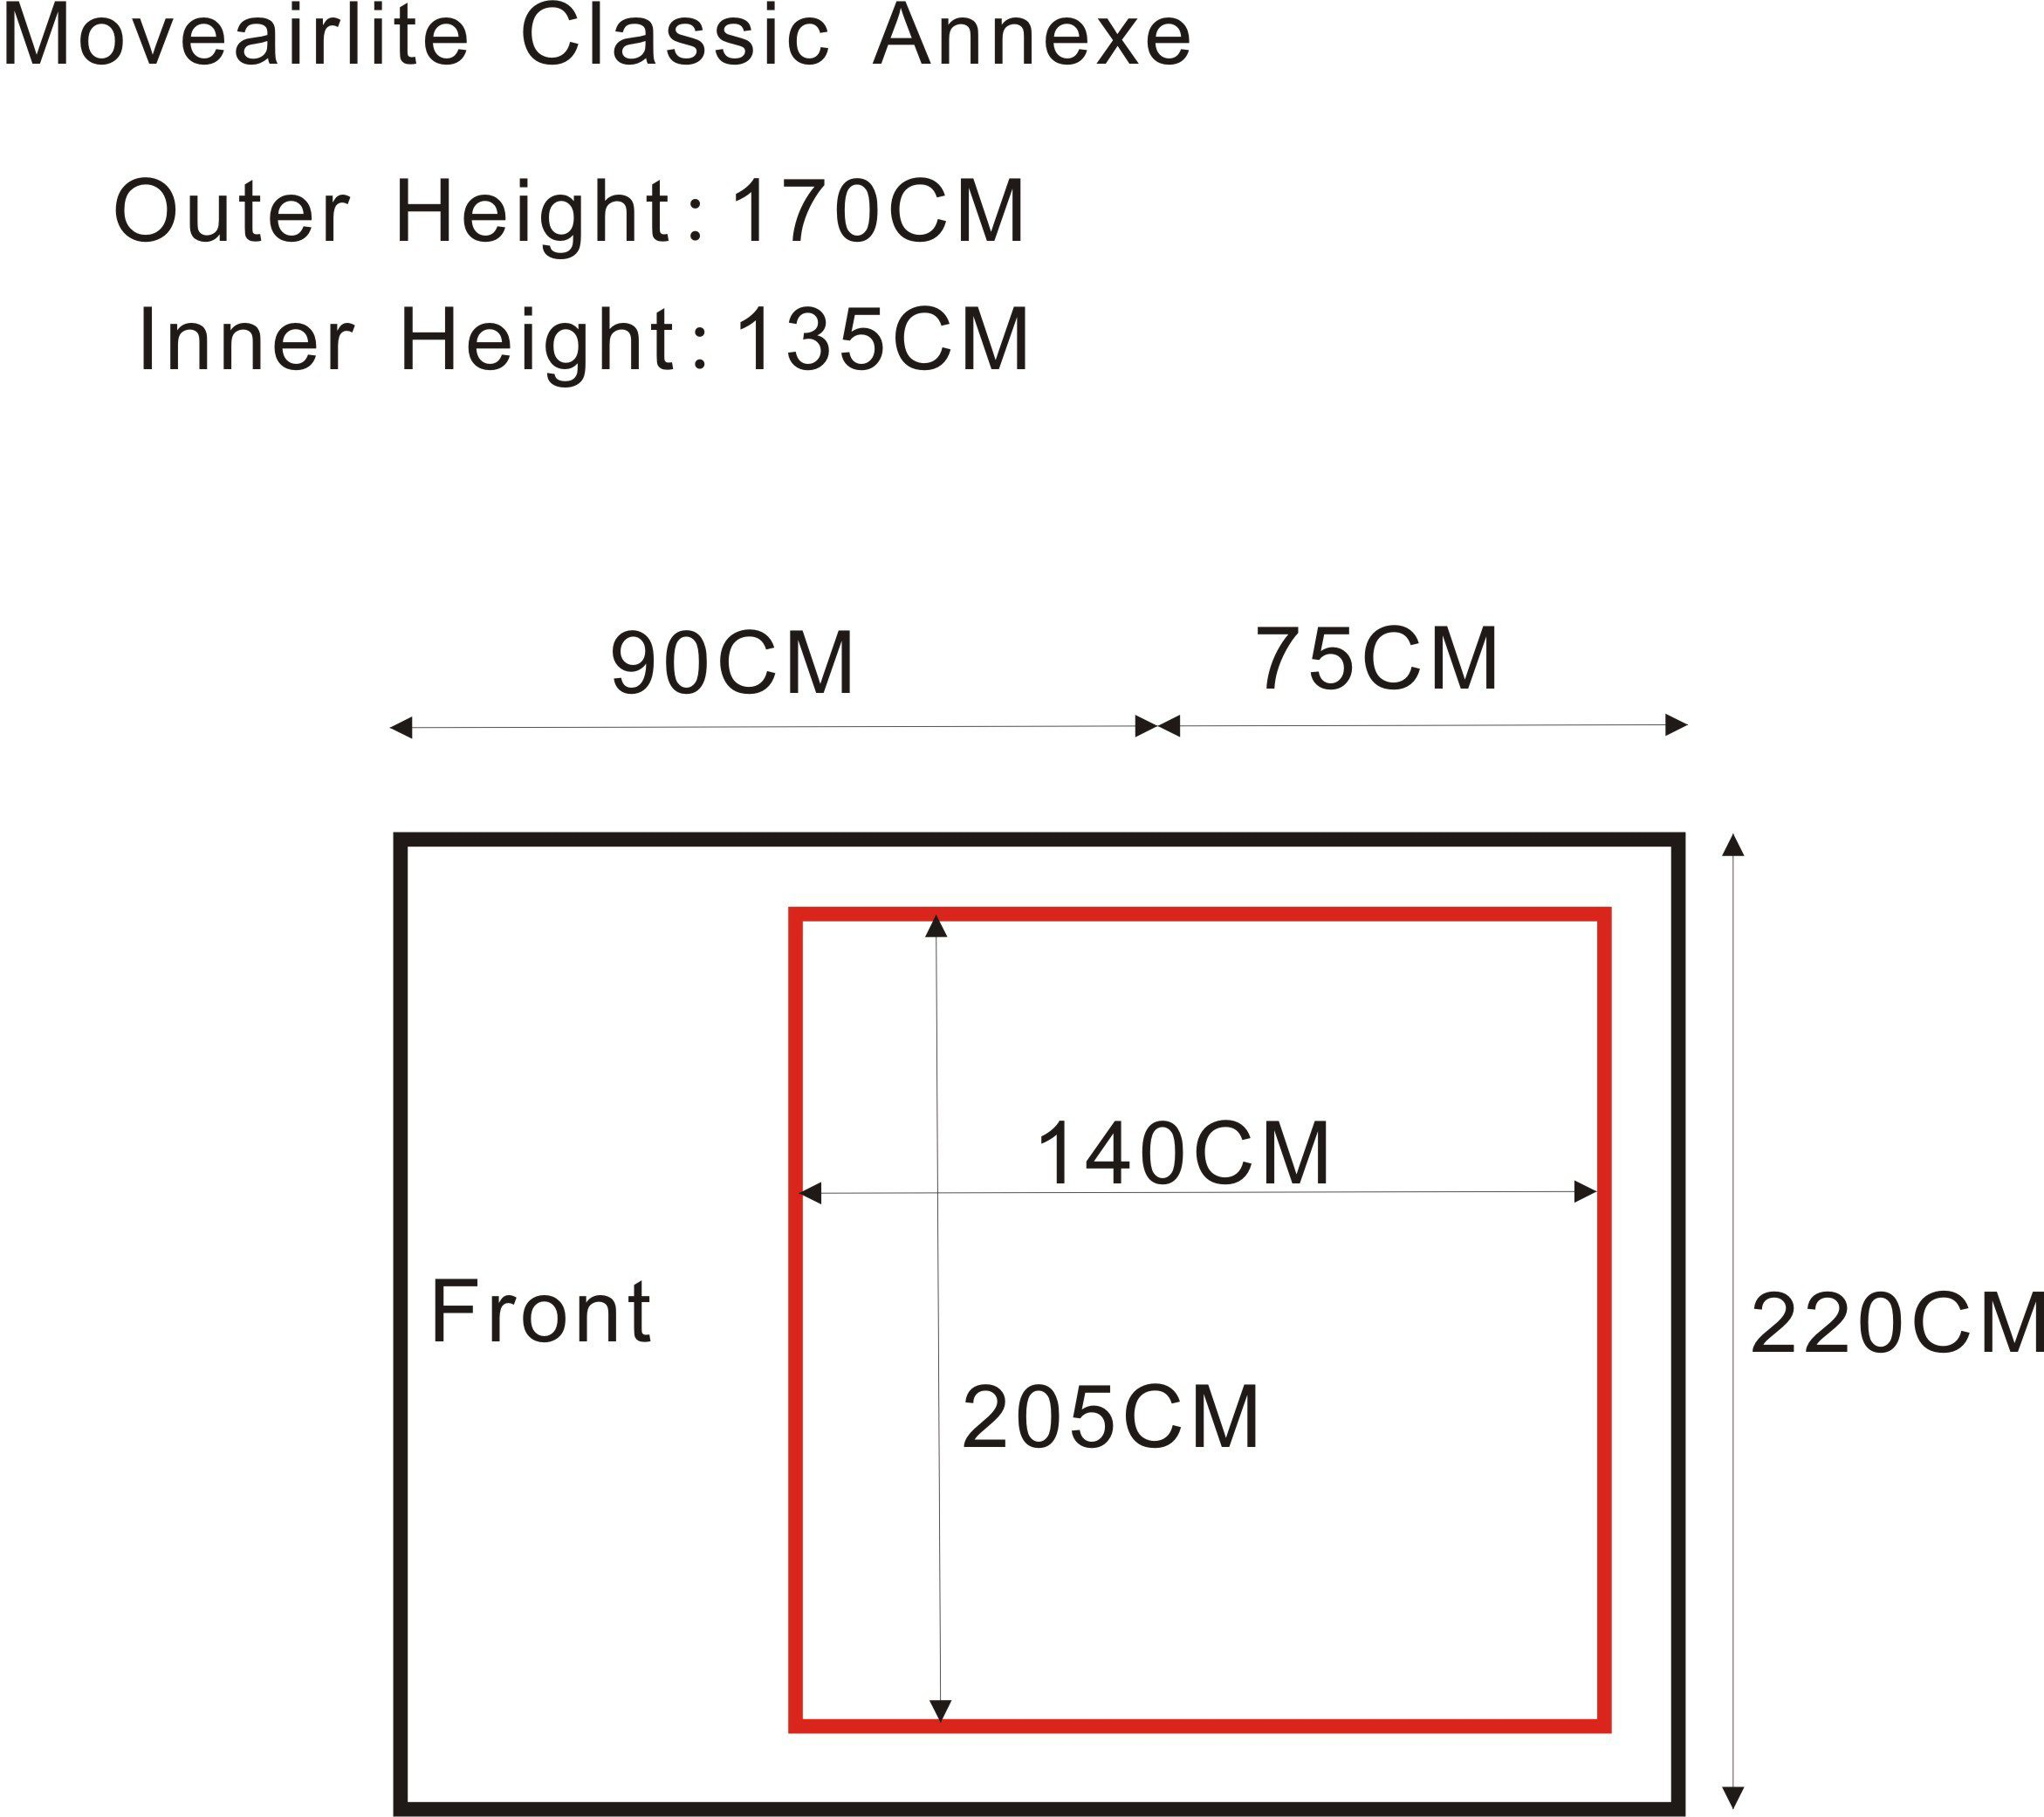 Moveairlite Classic Annexe